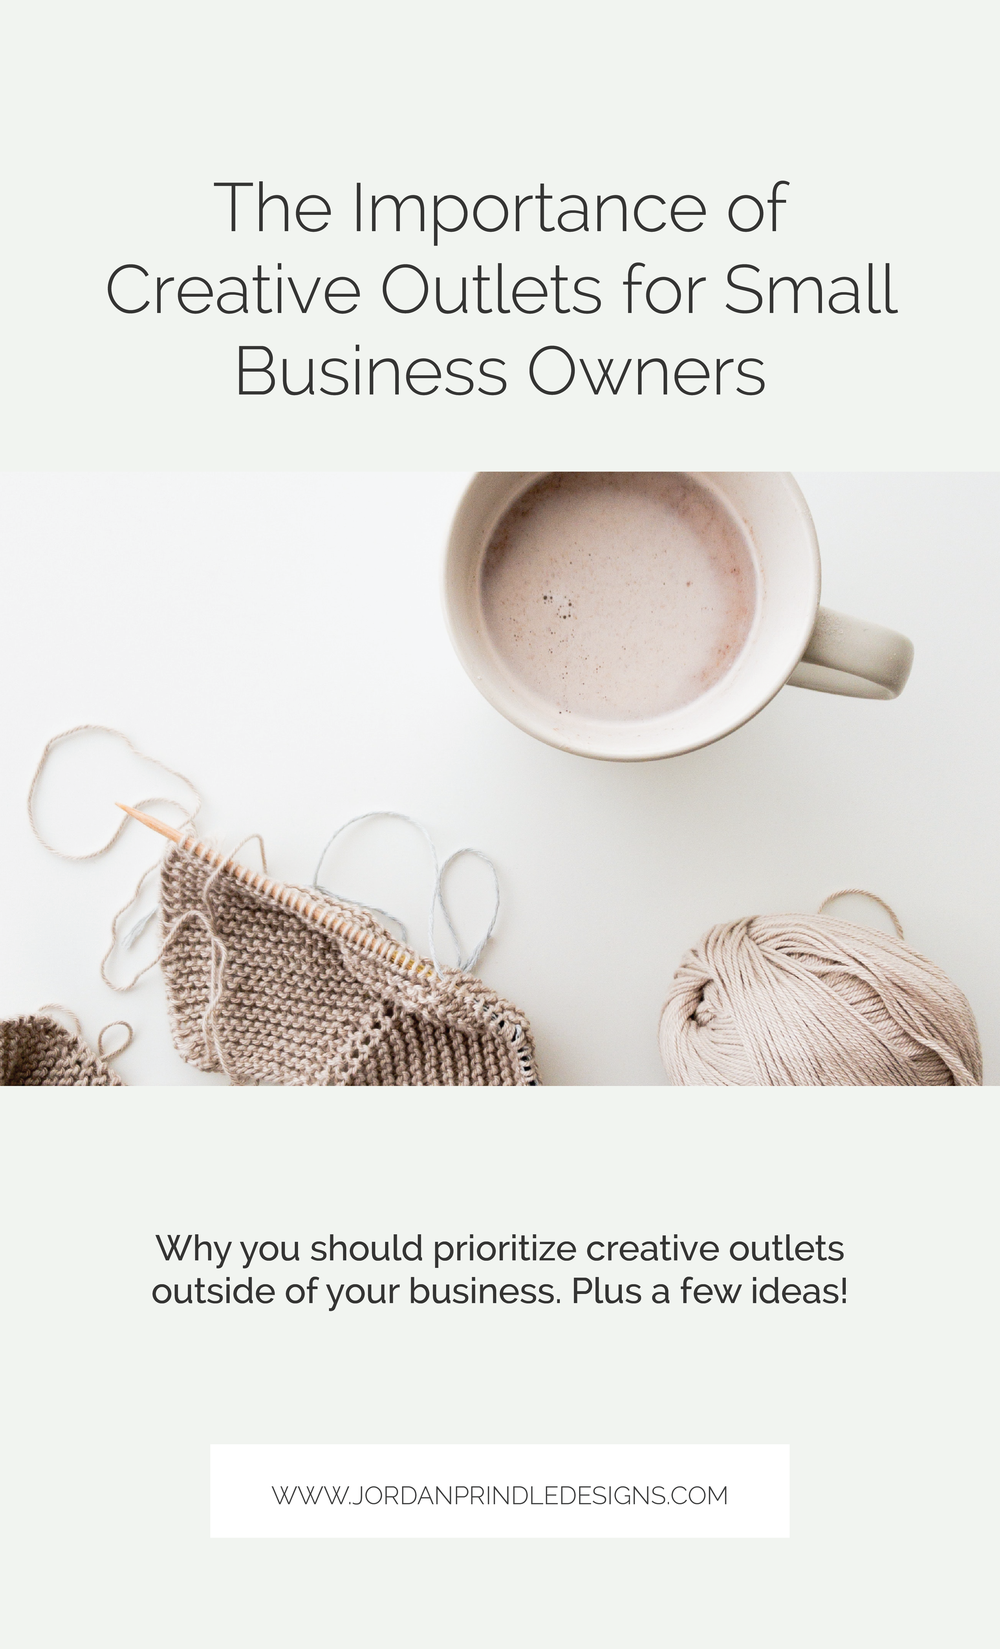 The Importance of Creative Outlets for Small Business Owners | As a creative entrepreneur your creativity is often tied up in your business. Today, I want to share why I think you need to pursue creativity elsewhere. Keep reading at www.jordanprindledesigns.com #smallbusinesstips #creativity #creativeentrepreneurs